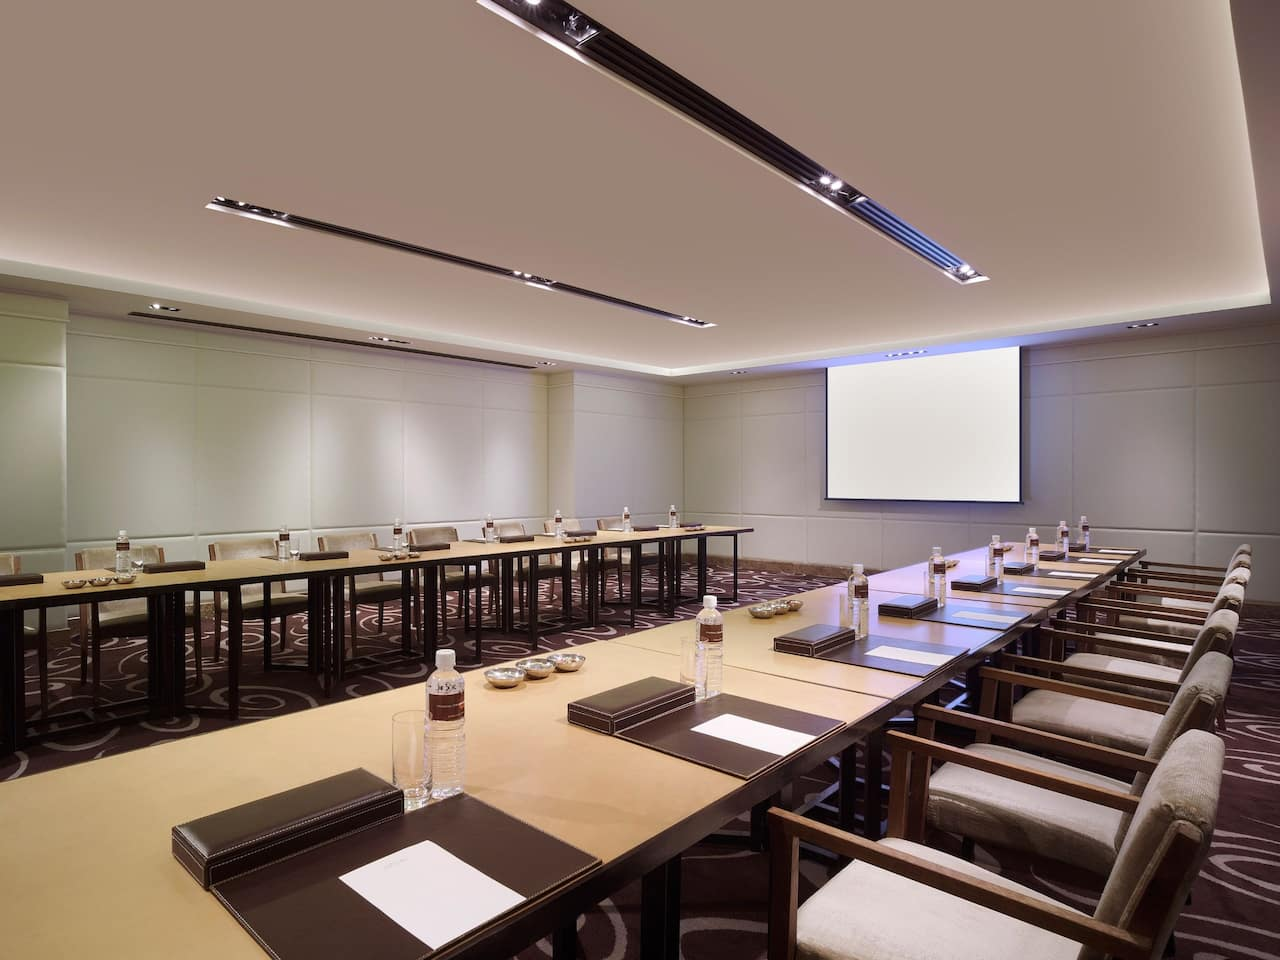 Grand Hyatt Taipei Function Room for Business Meetings and Conference Events